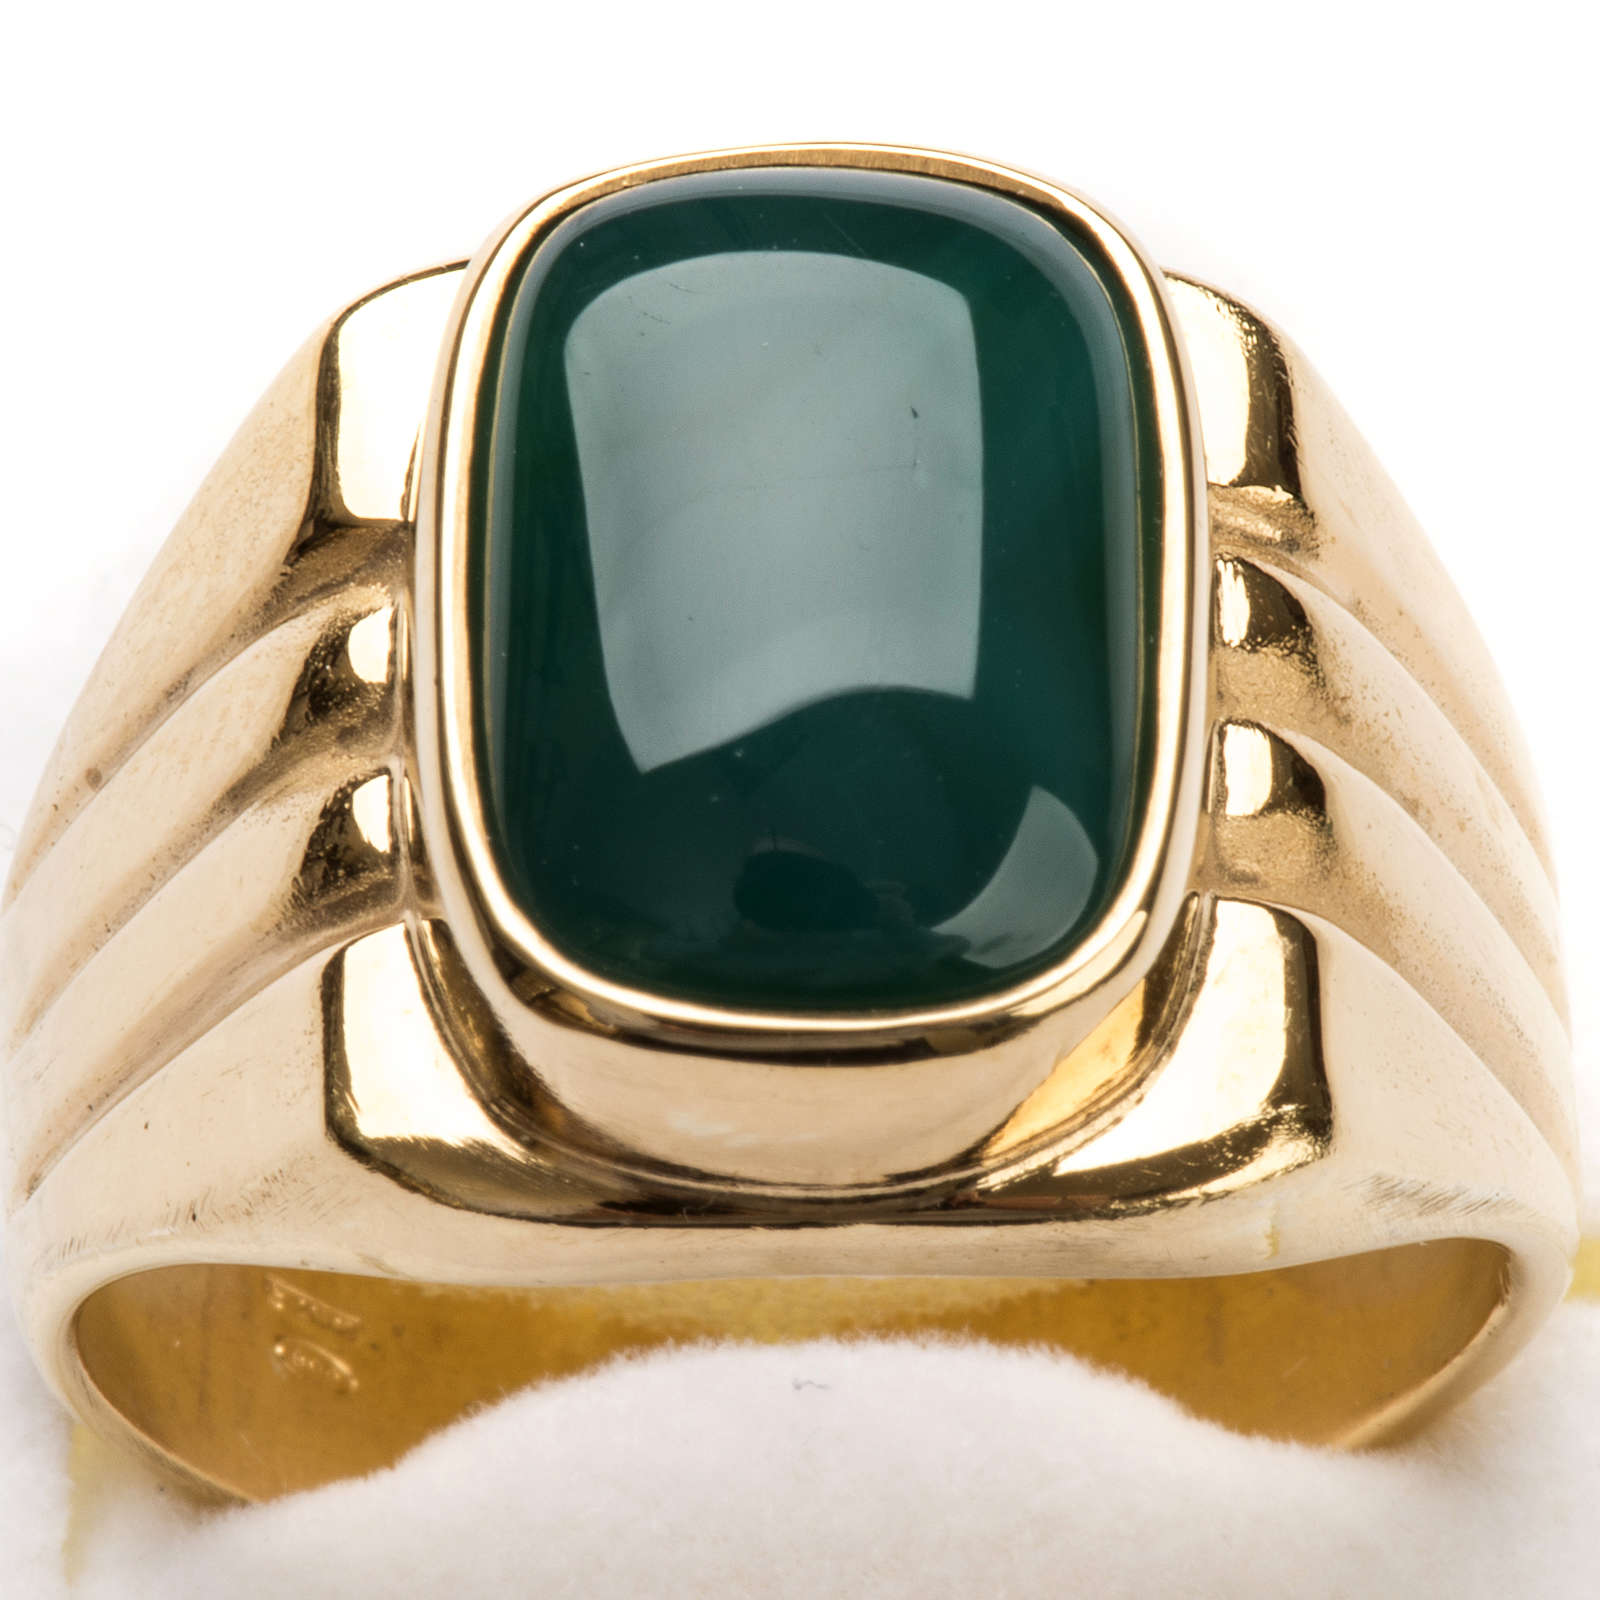 Bishop Ring in gold plated silver 800 with green agate stone 3